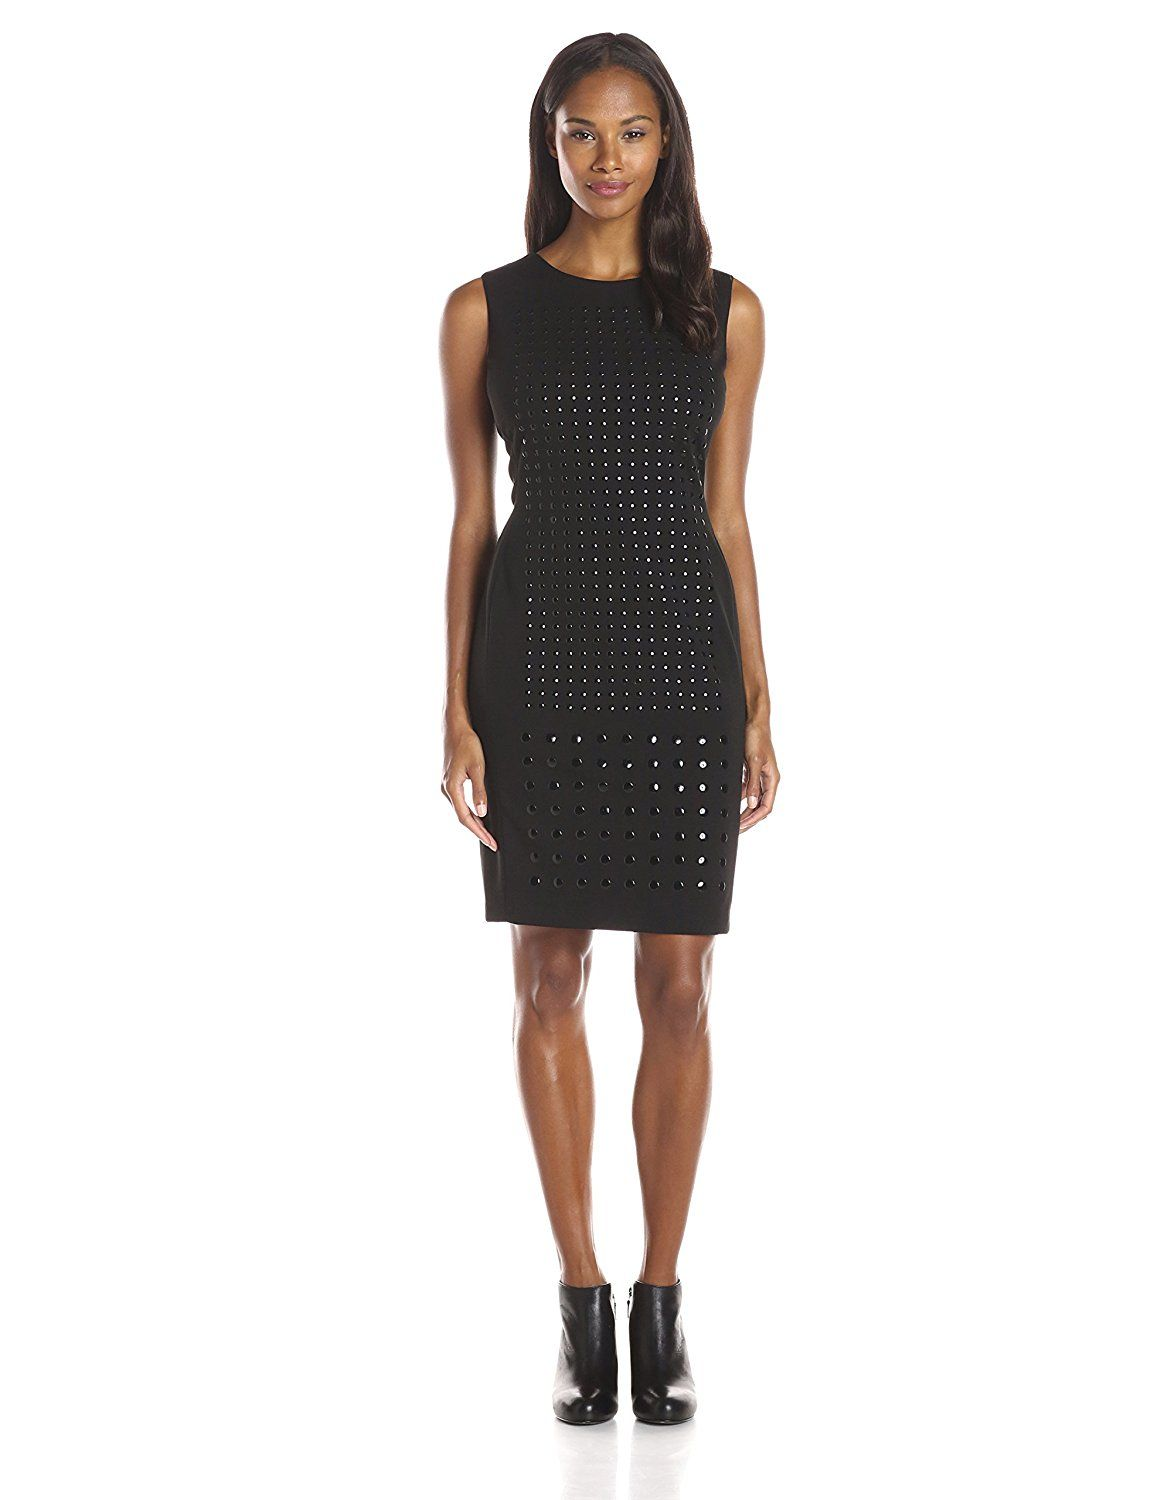 ed98f385 Calvin Klein Women's Sheath with Stud Layout >>> Remarkable product  available now. : Trendy plus size clothing